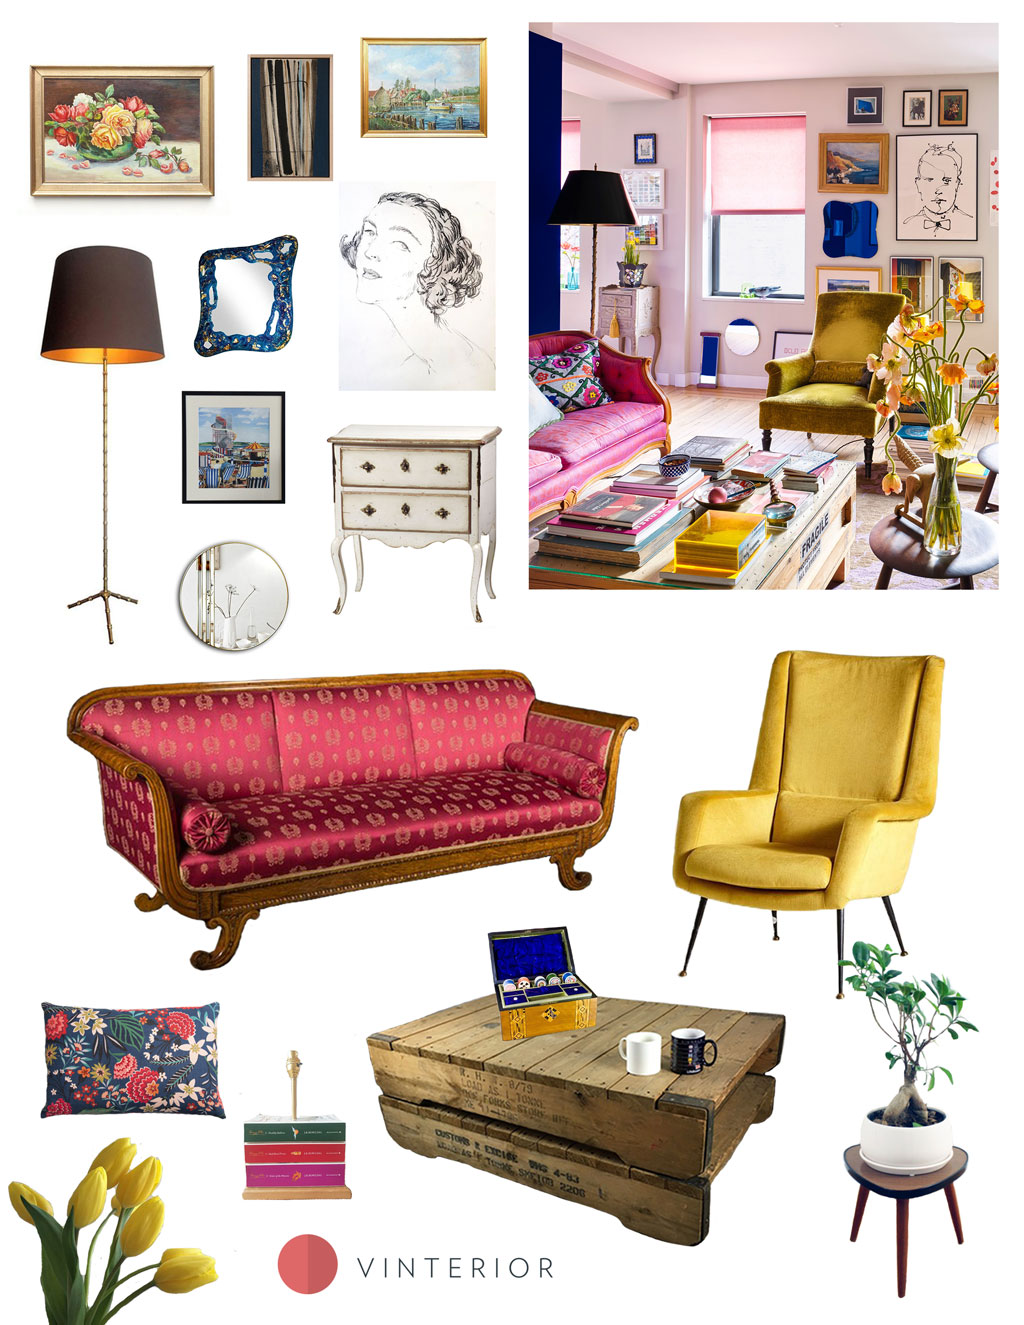 Get the Look: Maximalist Living room Designed for Happiness - Vinterior